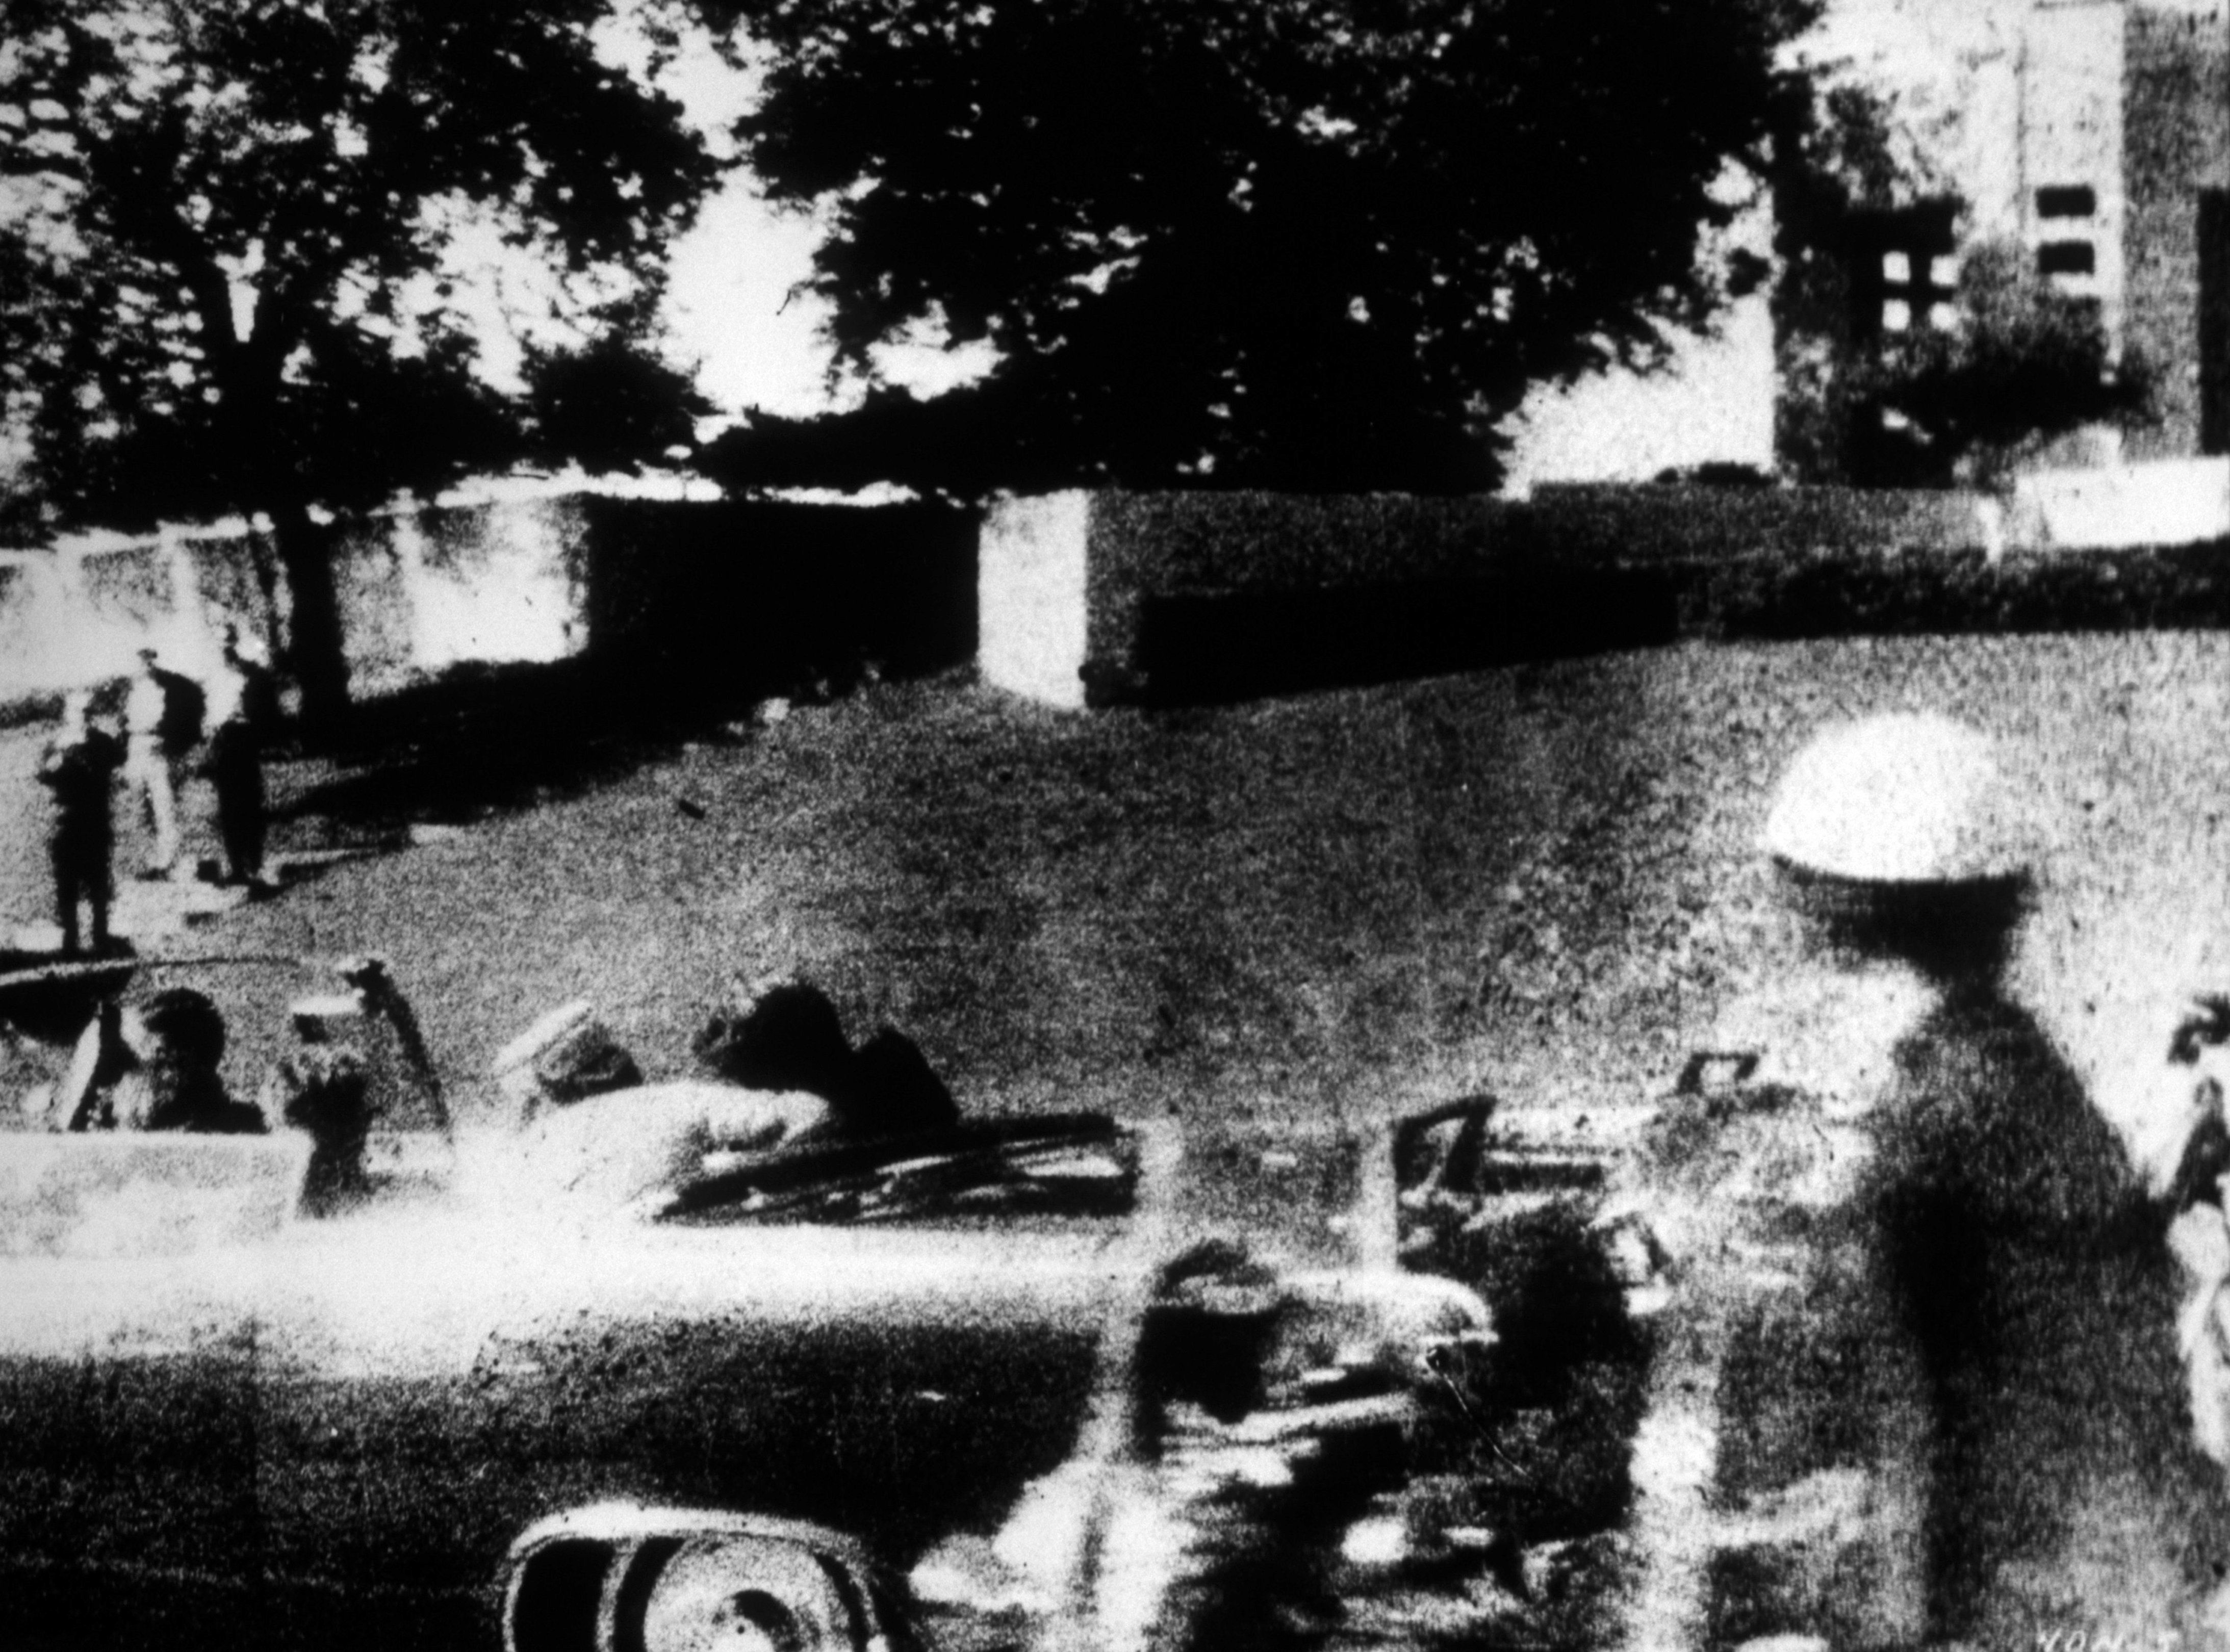 The moment President John F. Kennedy was shot in Dallas, Texas on November 22,